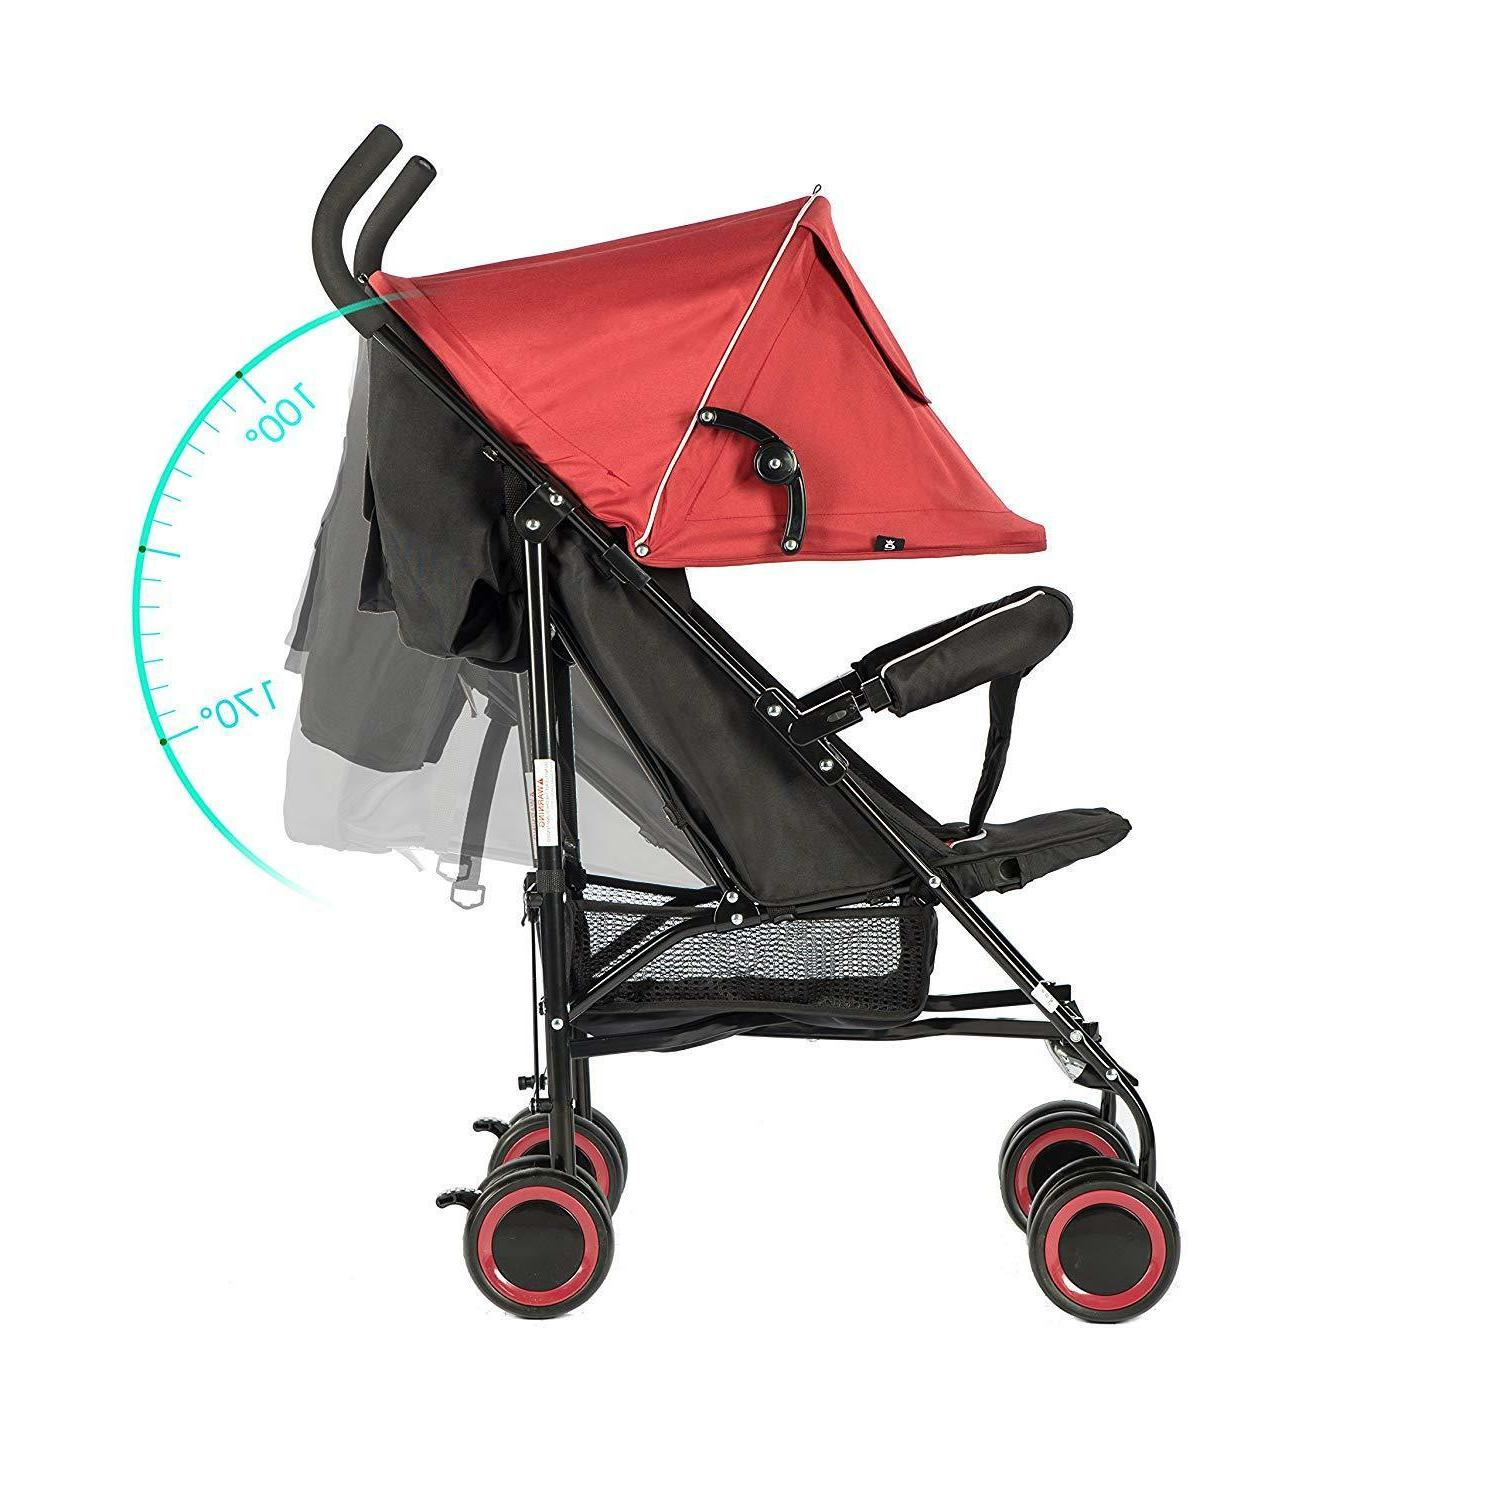 Evezo Travis Umbrella Stroller with Full